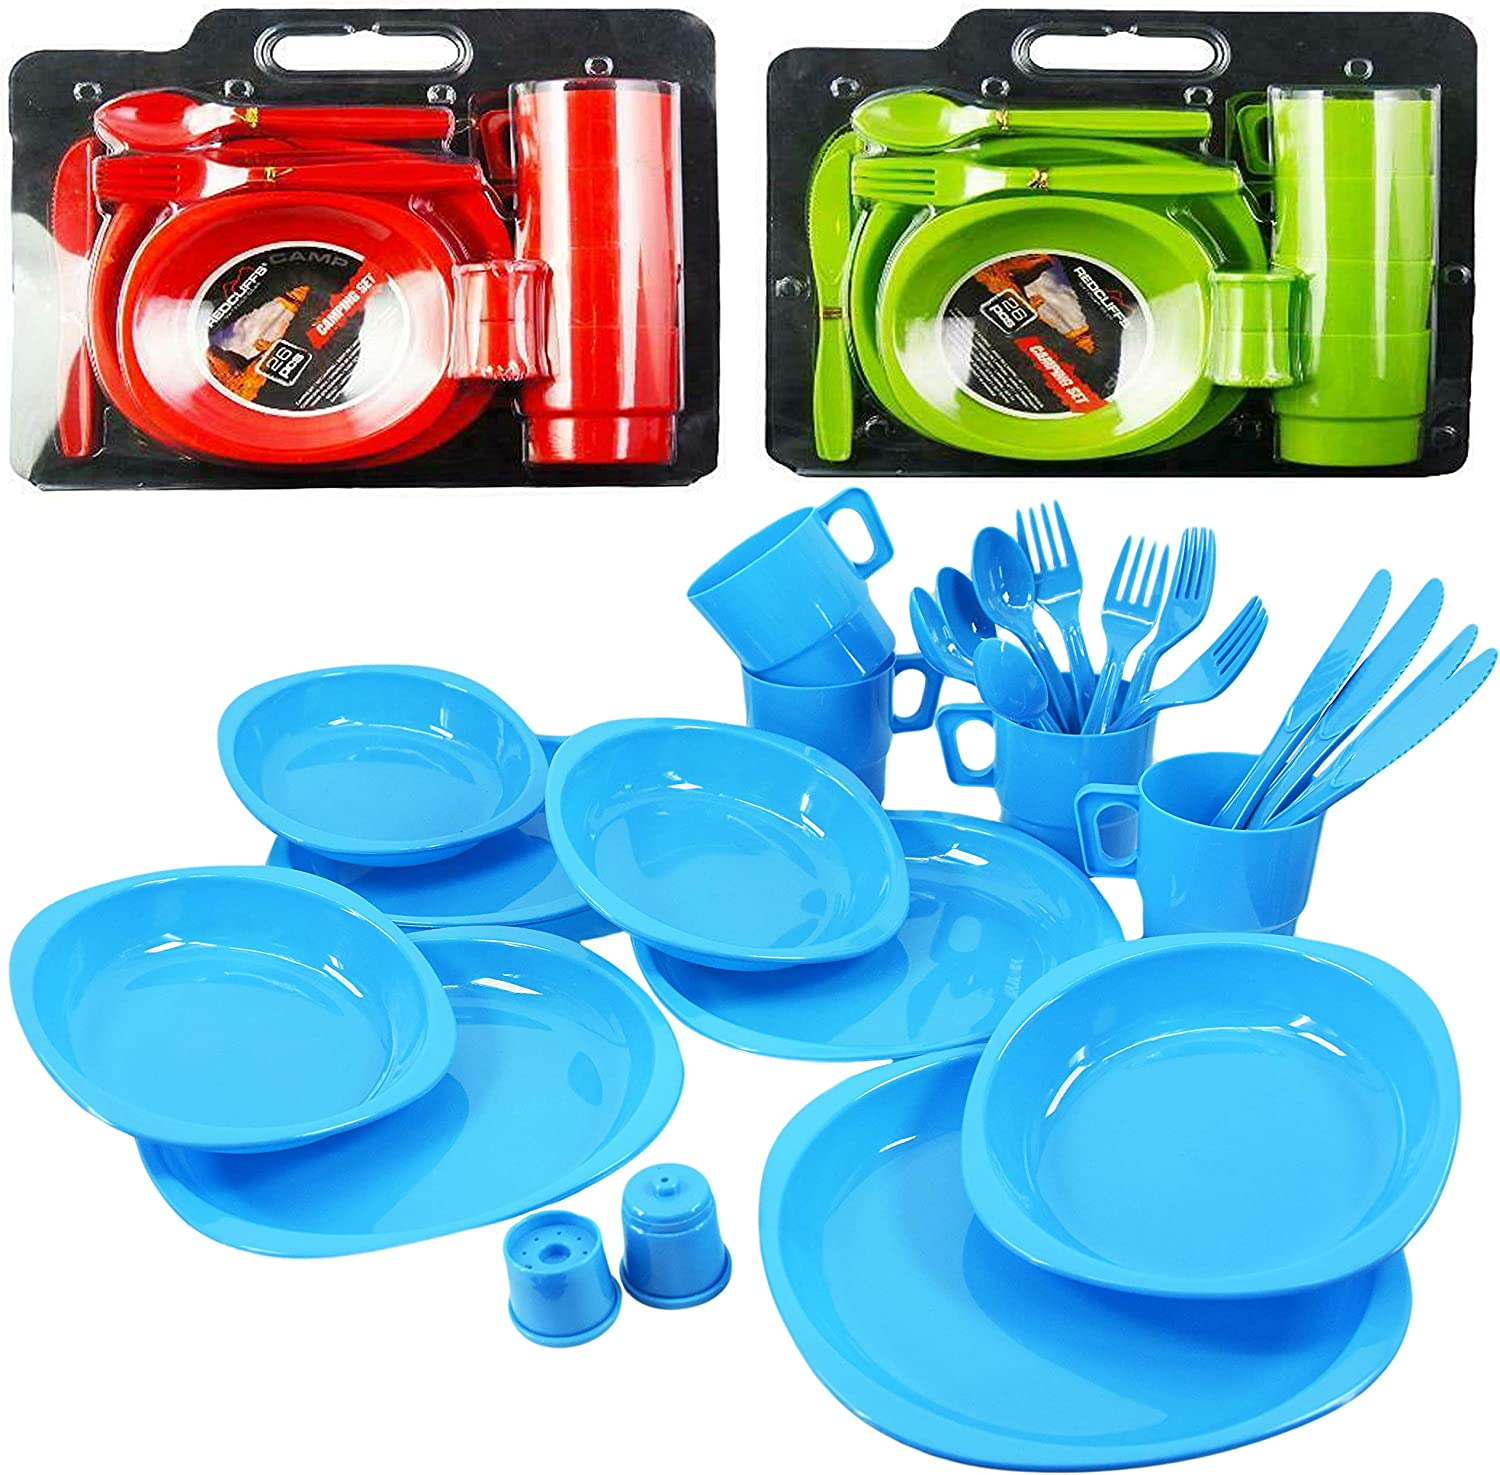 cups bowls and cutlery any colour 1 set of 26 Piece Picnic set of 4 x Plates